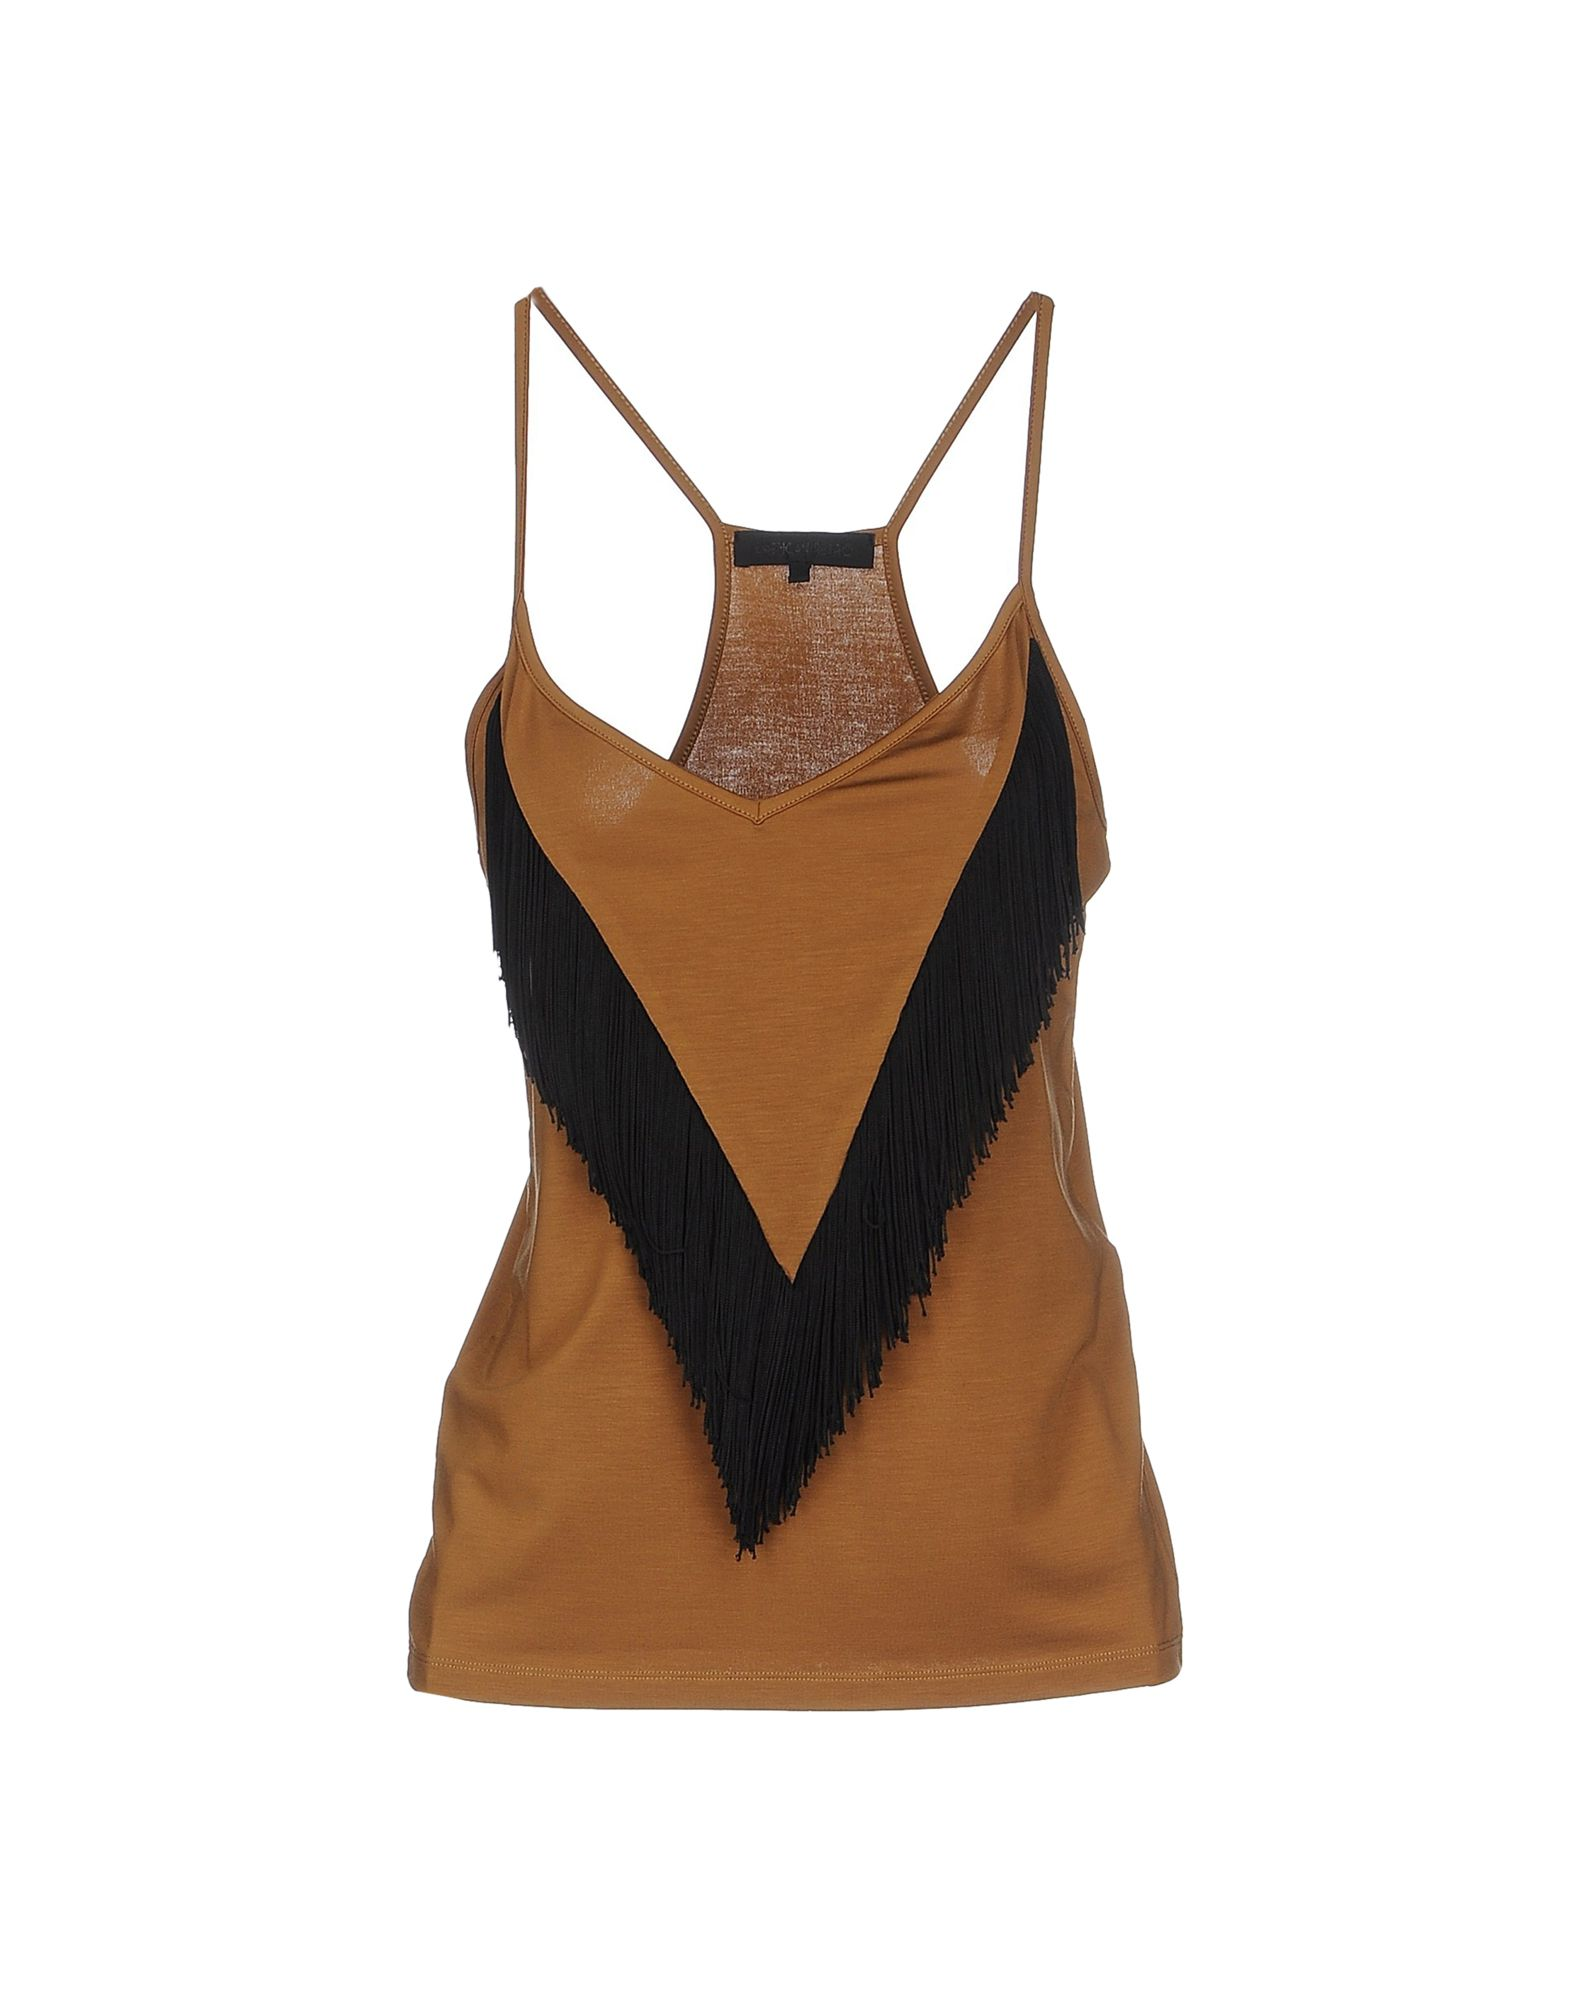 AMERICAN RETRO Top in Brown